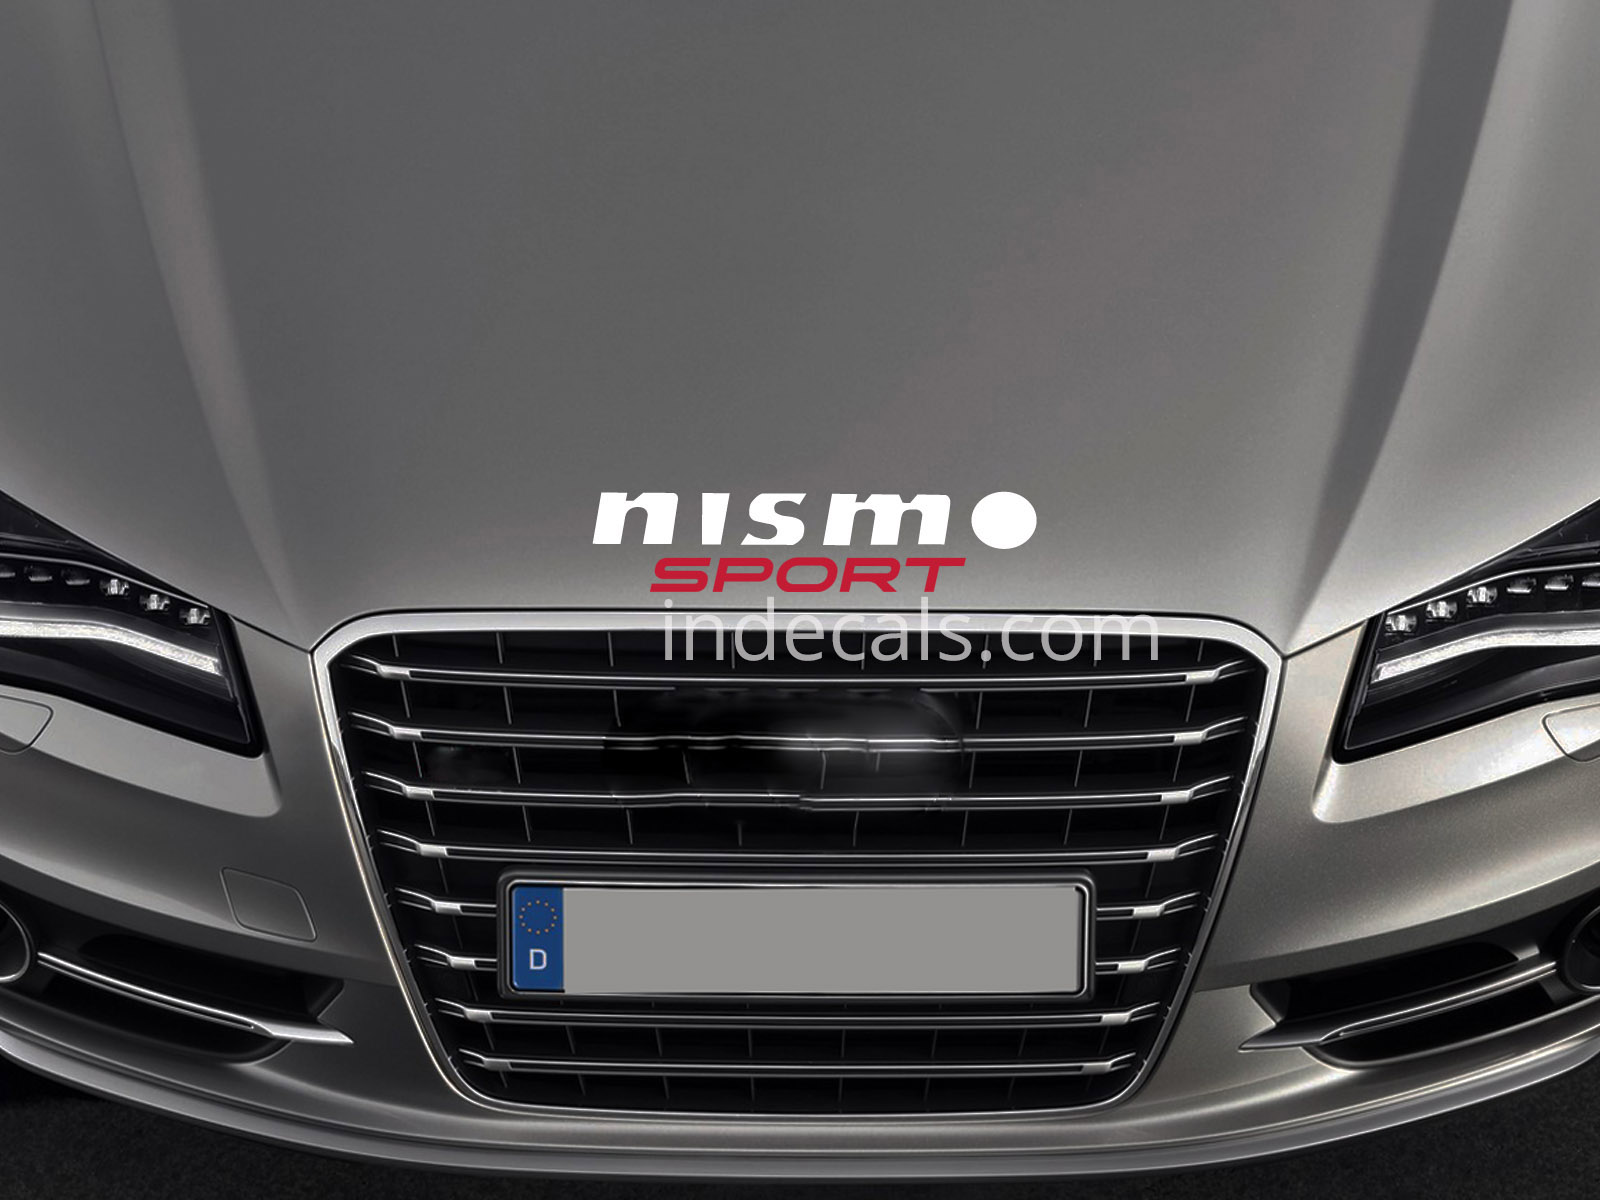 1 x Nismo Sport Sticker for Bonnet - White & Red